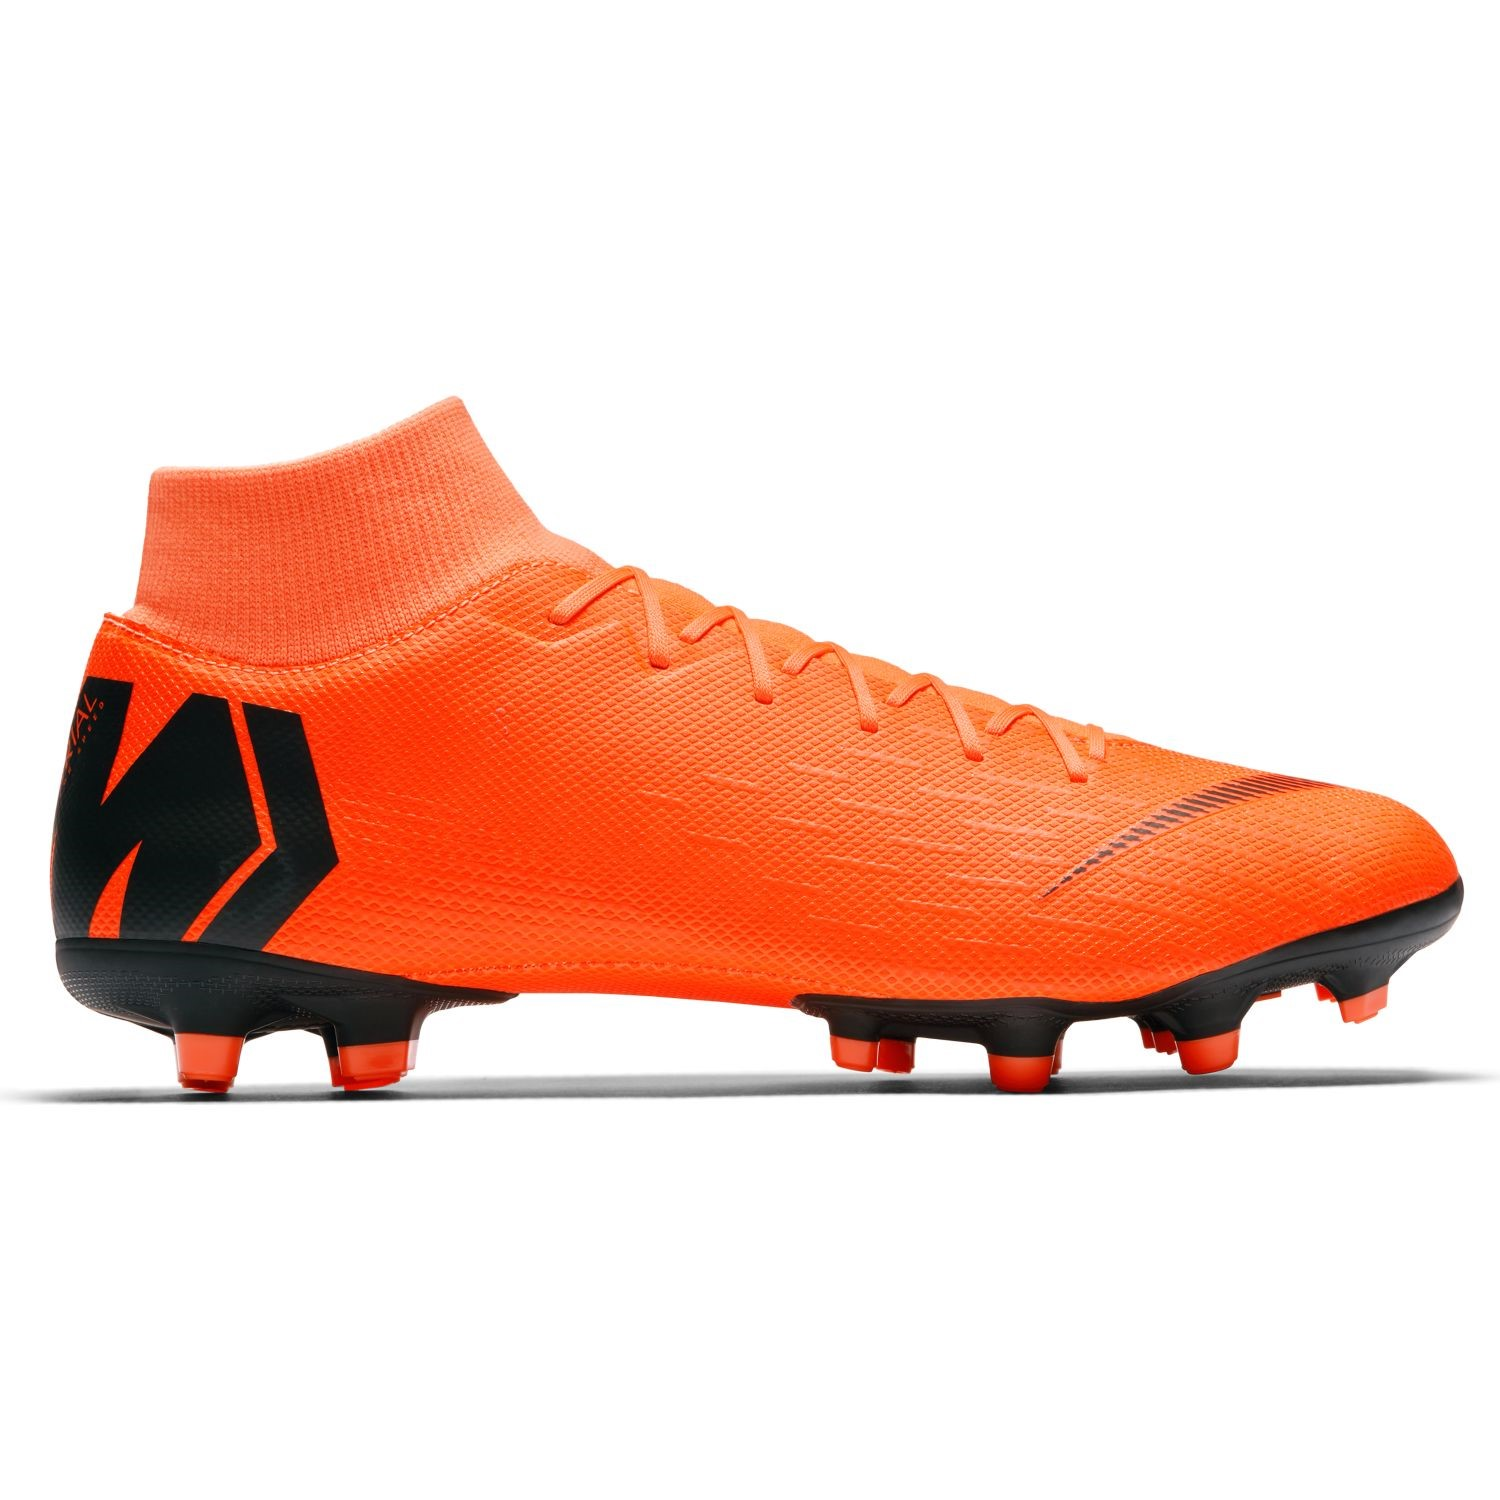 more photos bc7c6 c4daa Nike Mercurial Superfly VI Academy MG - Mens Football Boots - Total  Orange Black